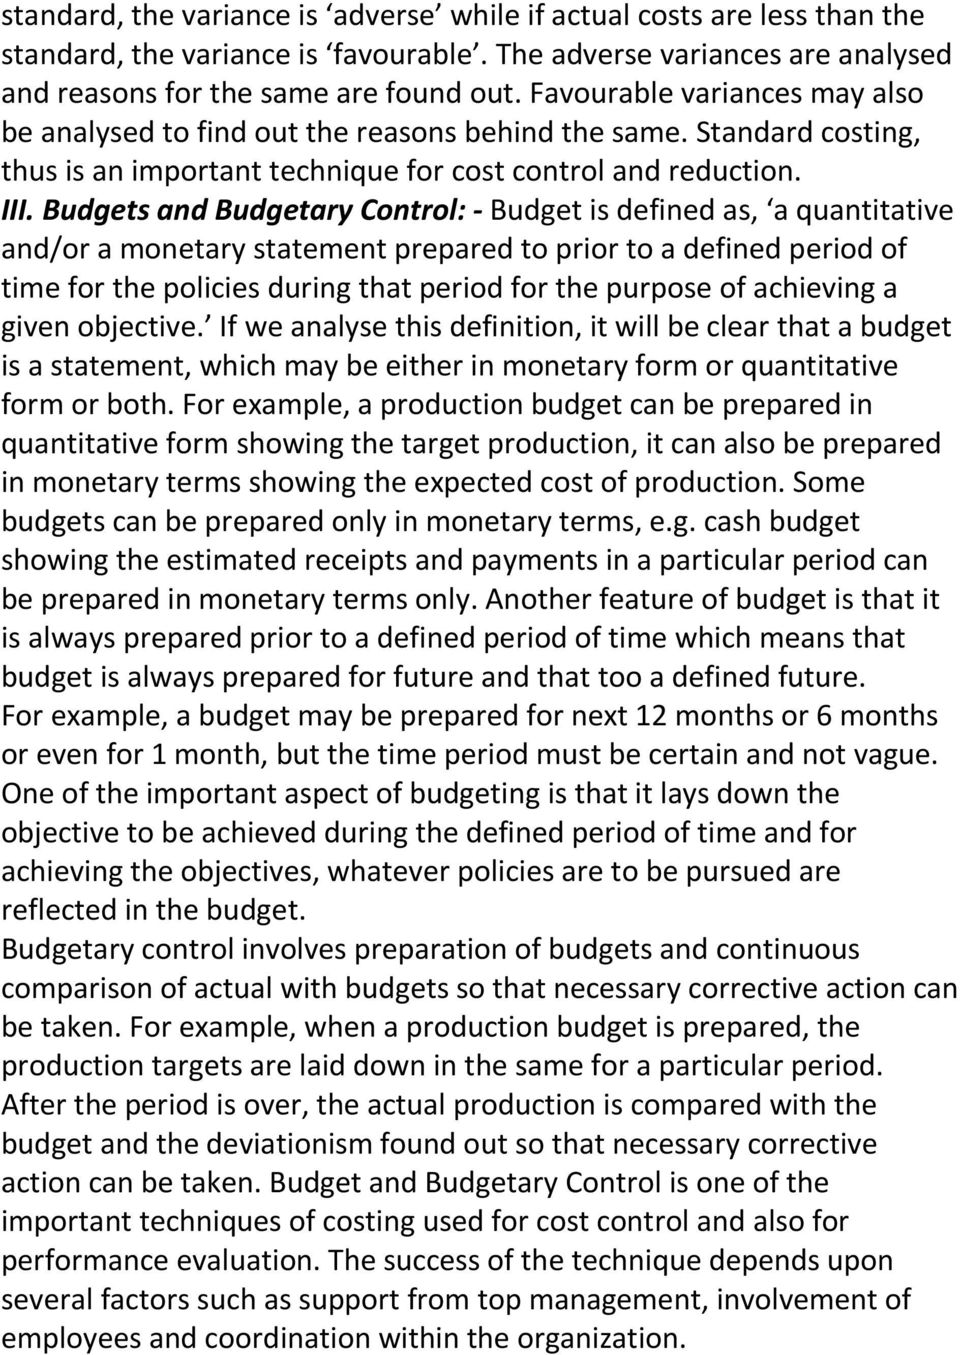 Budgets and Budgetary Control: - Budget is defined as, a quantitative and/or a monetary statement prepared to prior to a defined period of time for the policies during that period for the purpose of